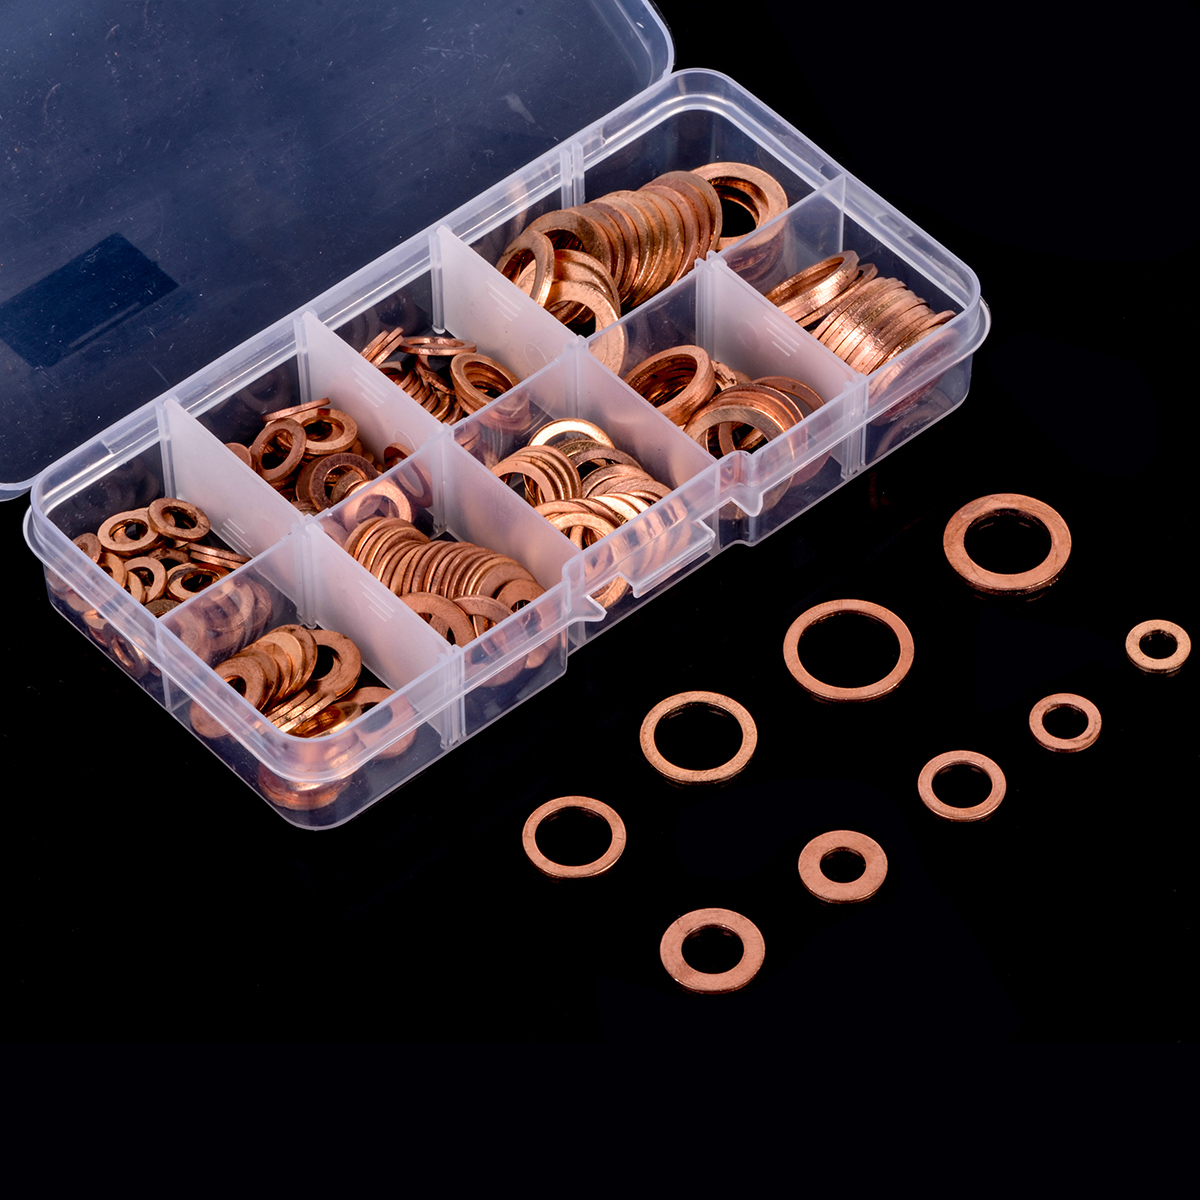 200pcs Solid Copper Washer Gasket Set Flat Ring Sump Plug Oil Seal Fittings Washers Fastener Hardware Accessories M5 M14|Washers| |  - title=